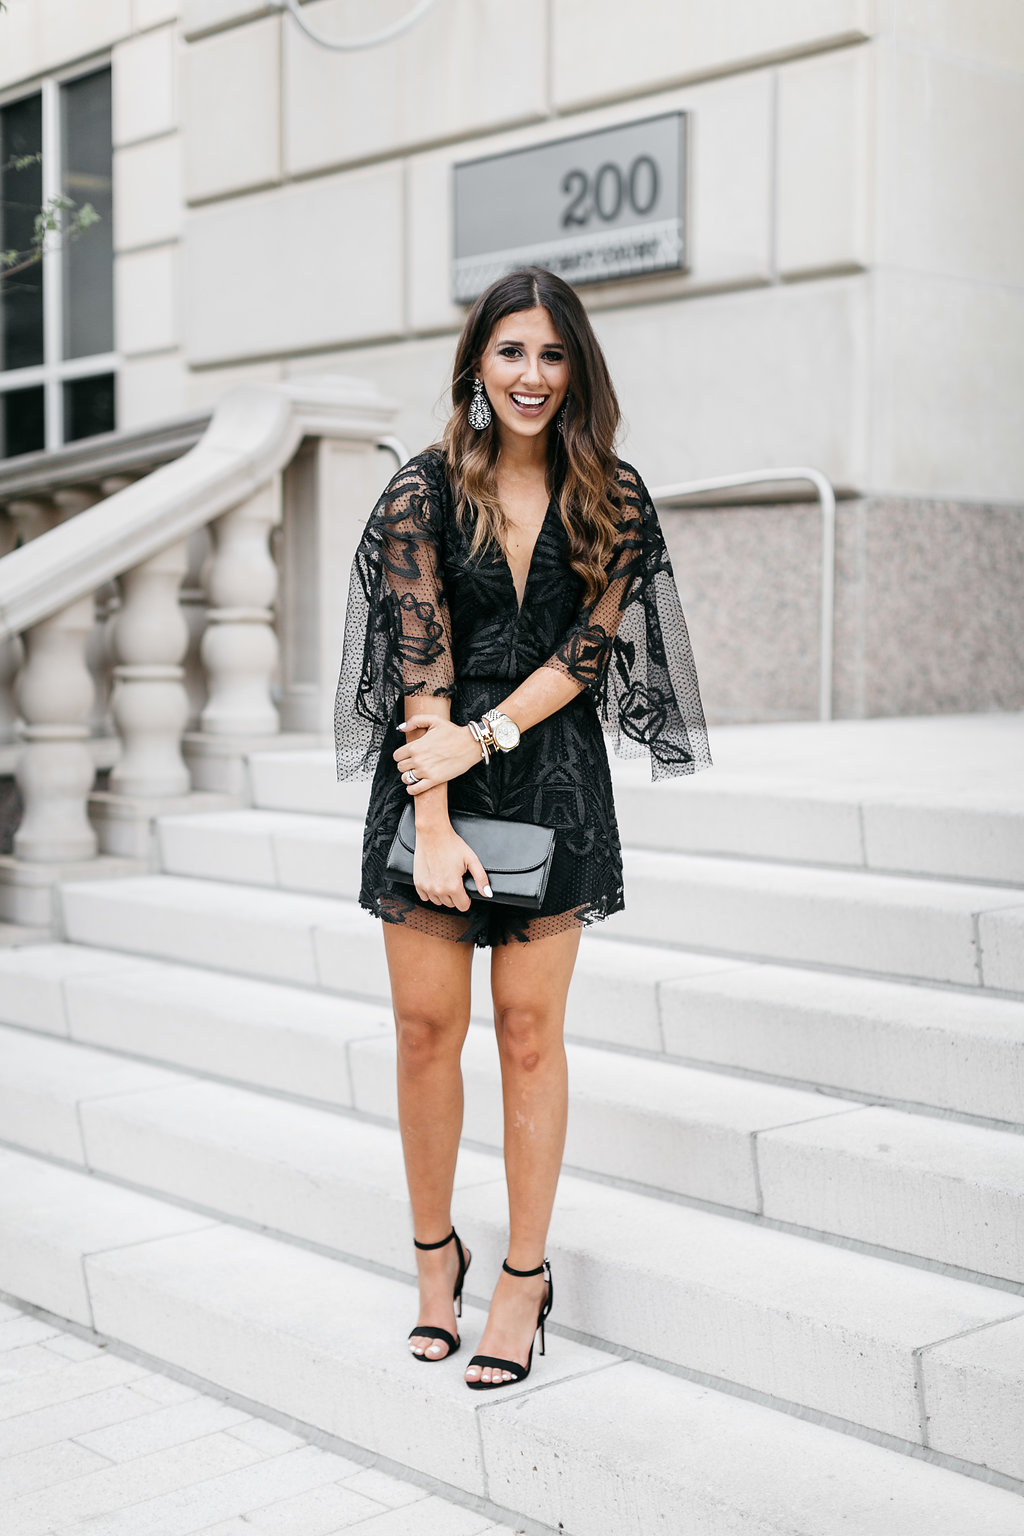 Dress Up Buttercup // A Houston-based fashion and inspiration blog developed to daily inspire your own personal style by Dede Raad | A Fancy Romper